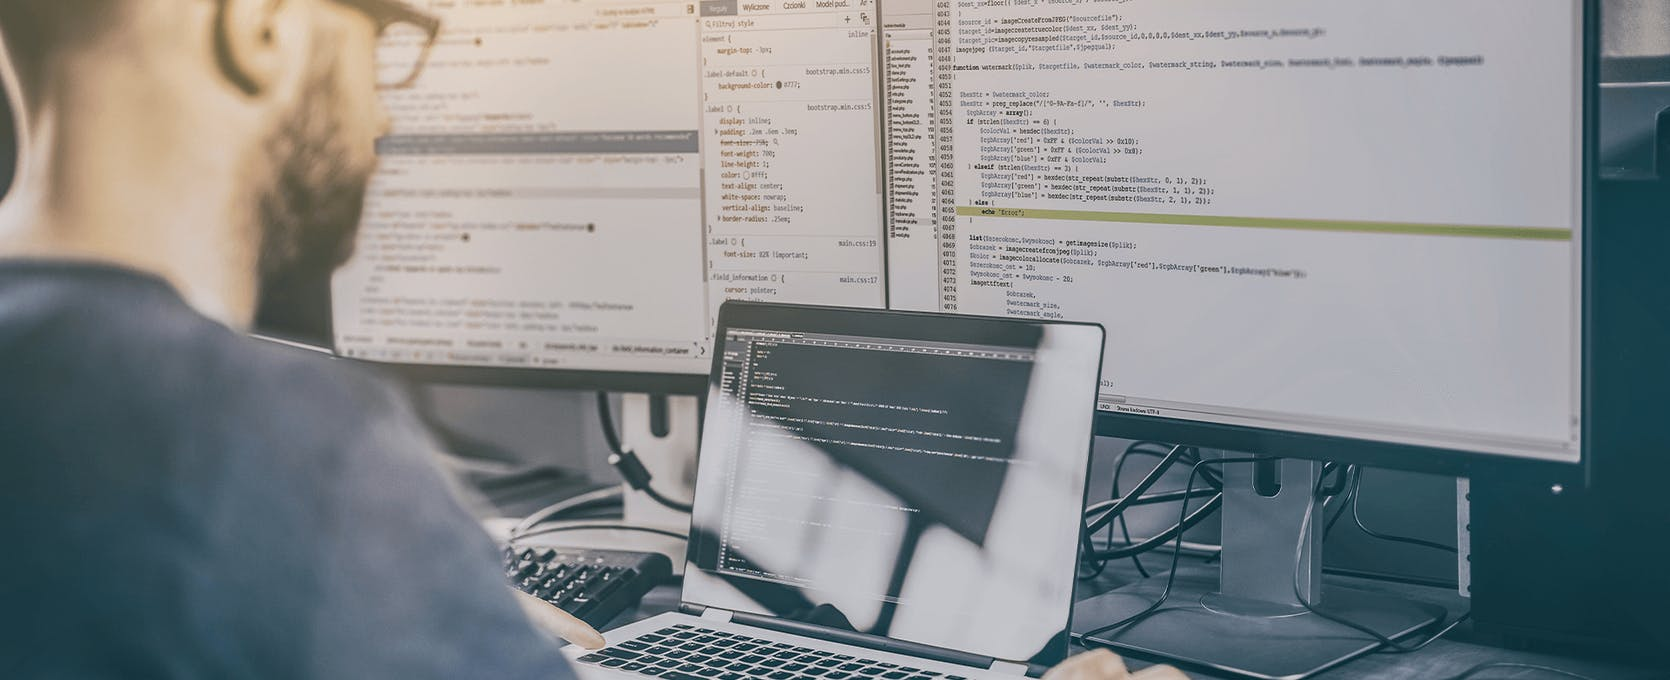 Professional software engineer analyzes data and software programs at computer